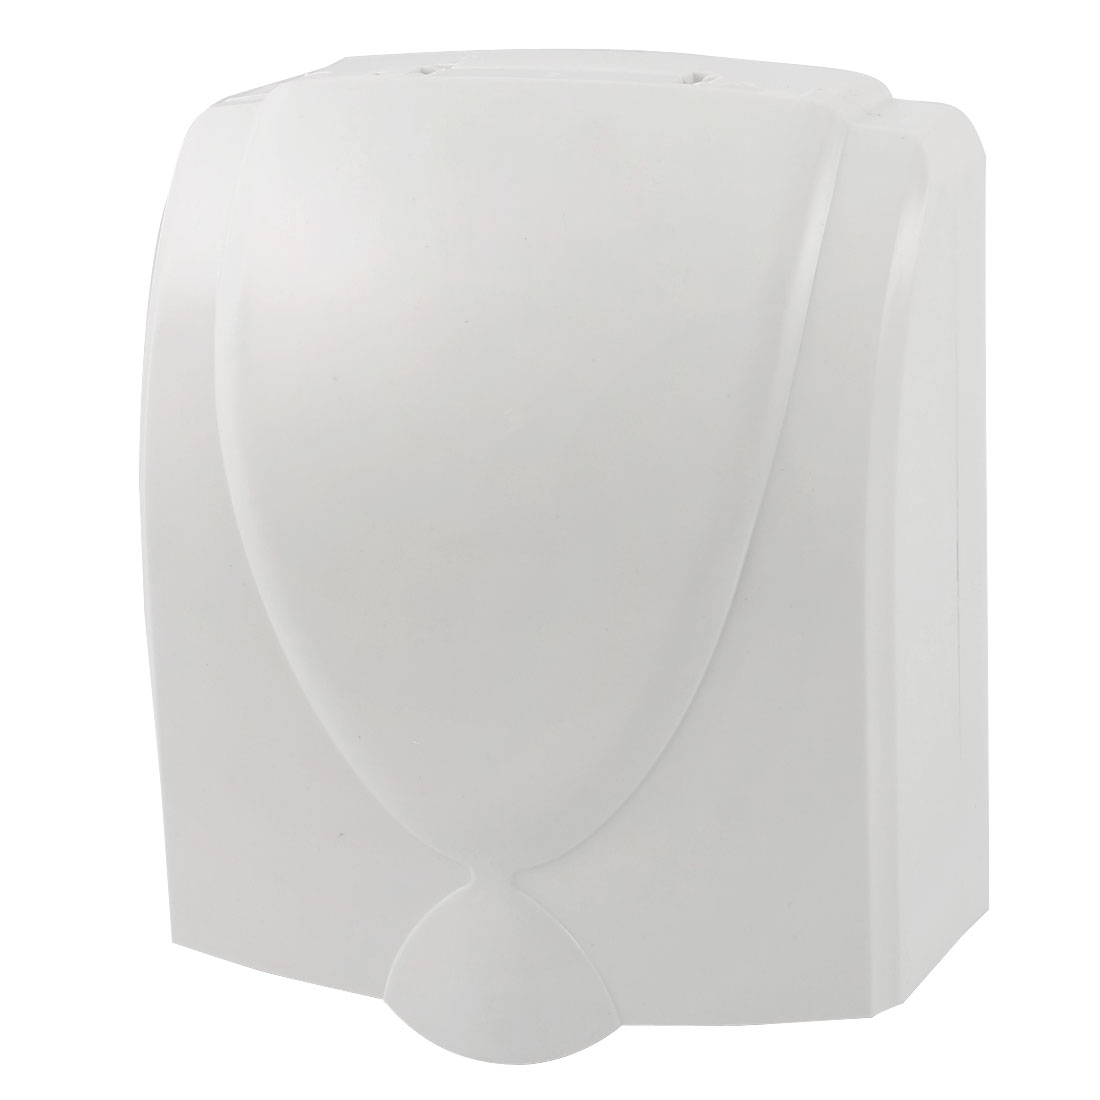 White Plastic Wall Panel Switch Socket Holder Splash Proof Box 120x99x45mm